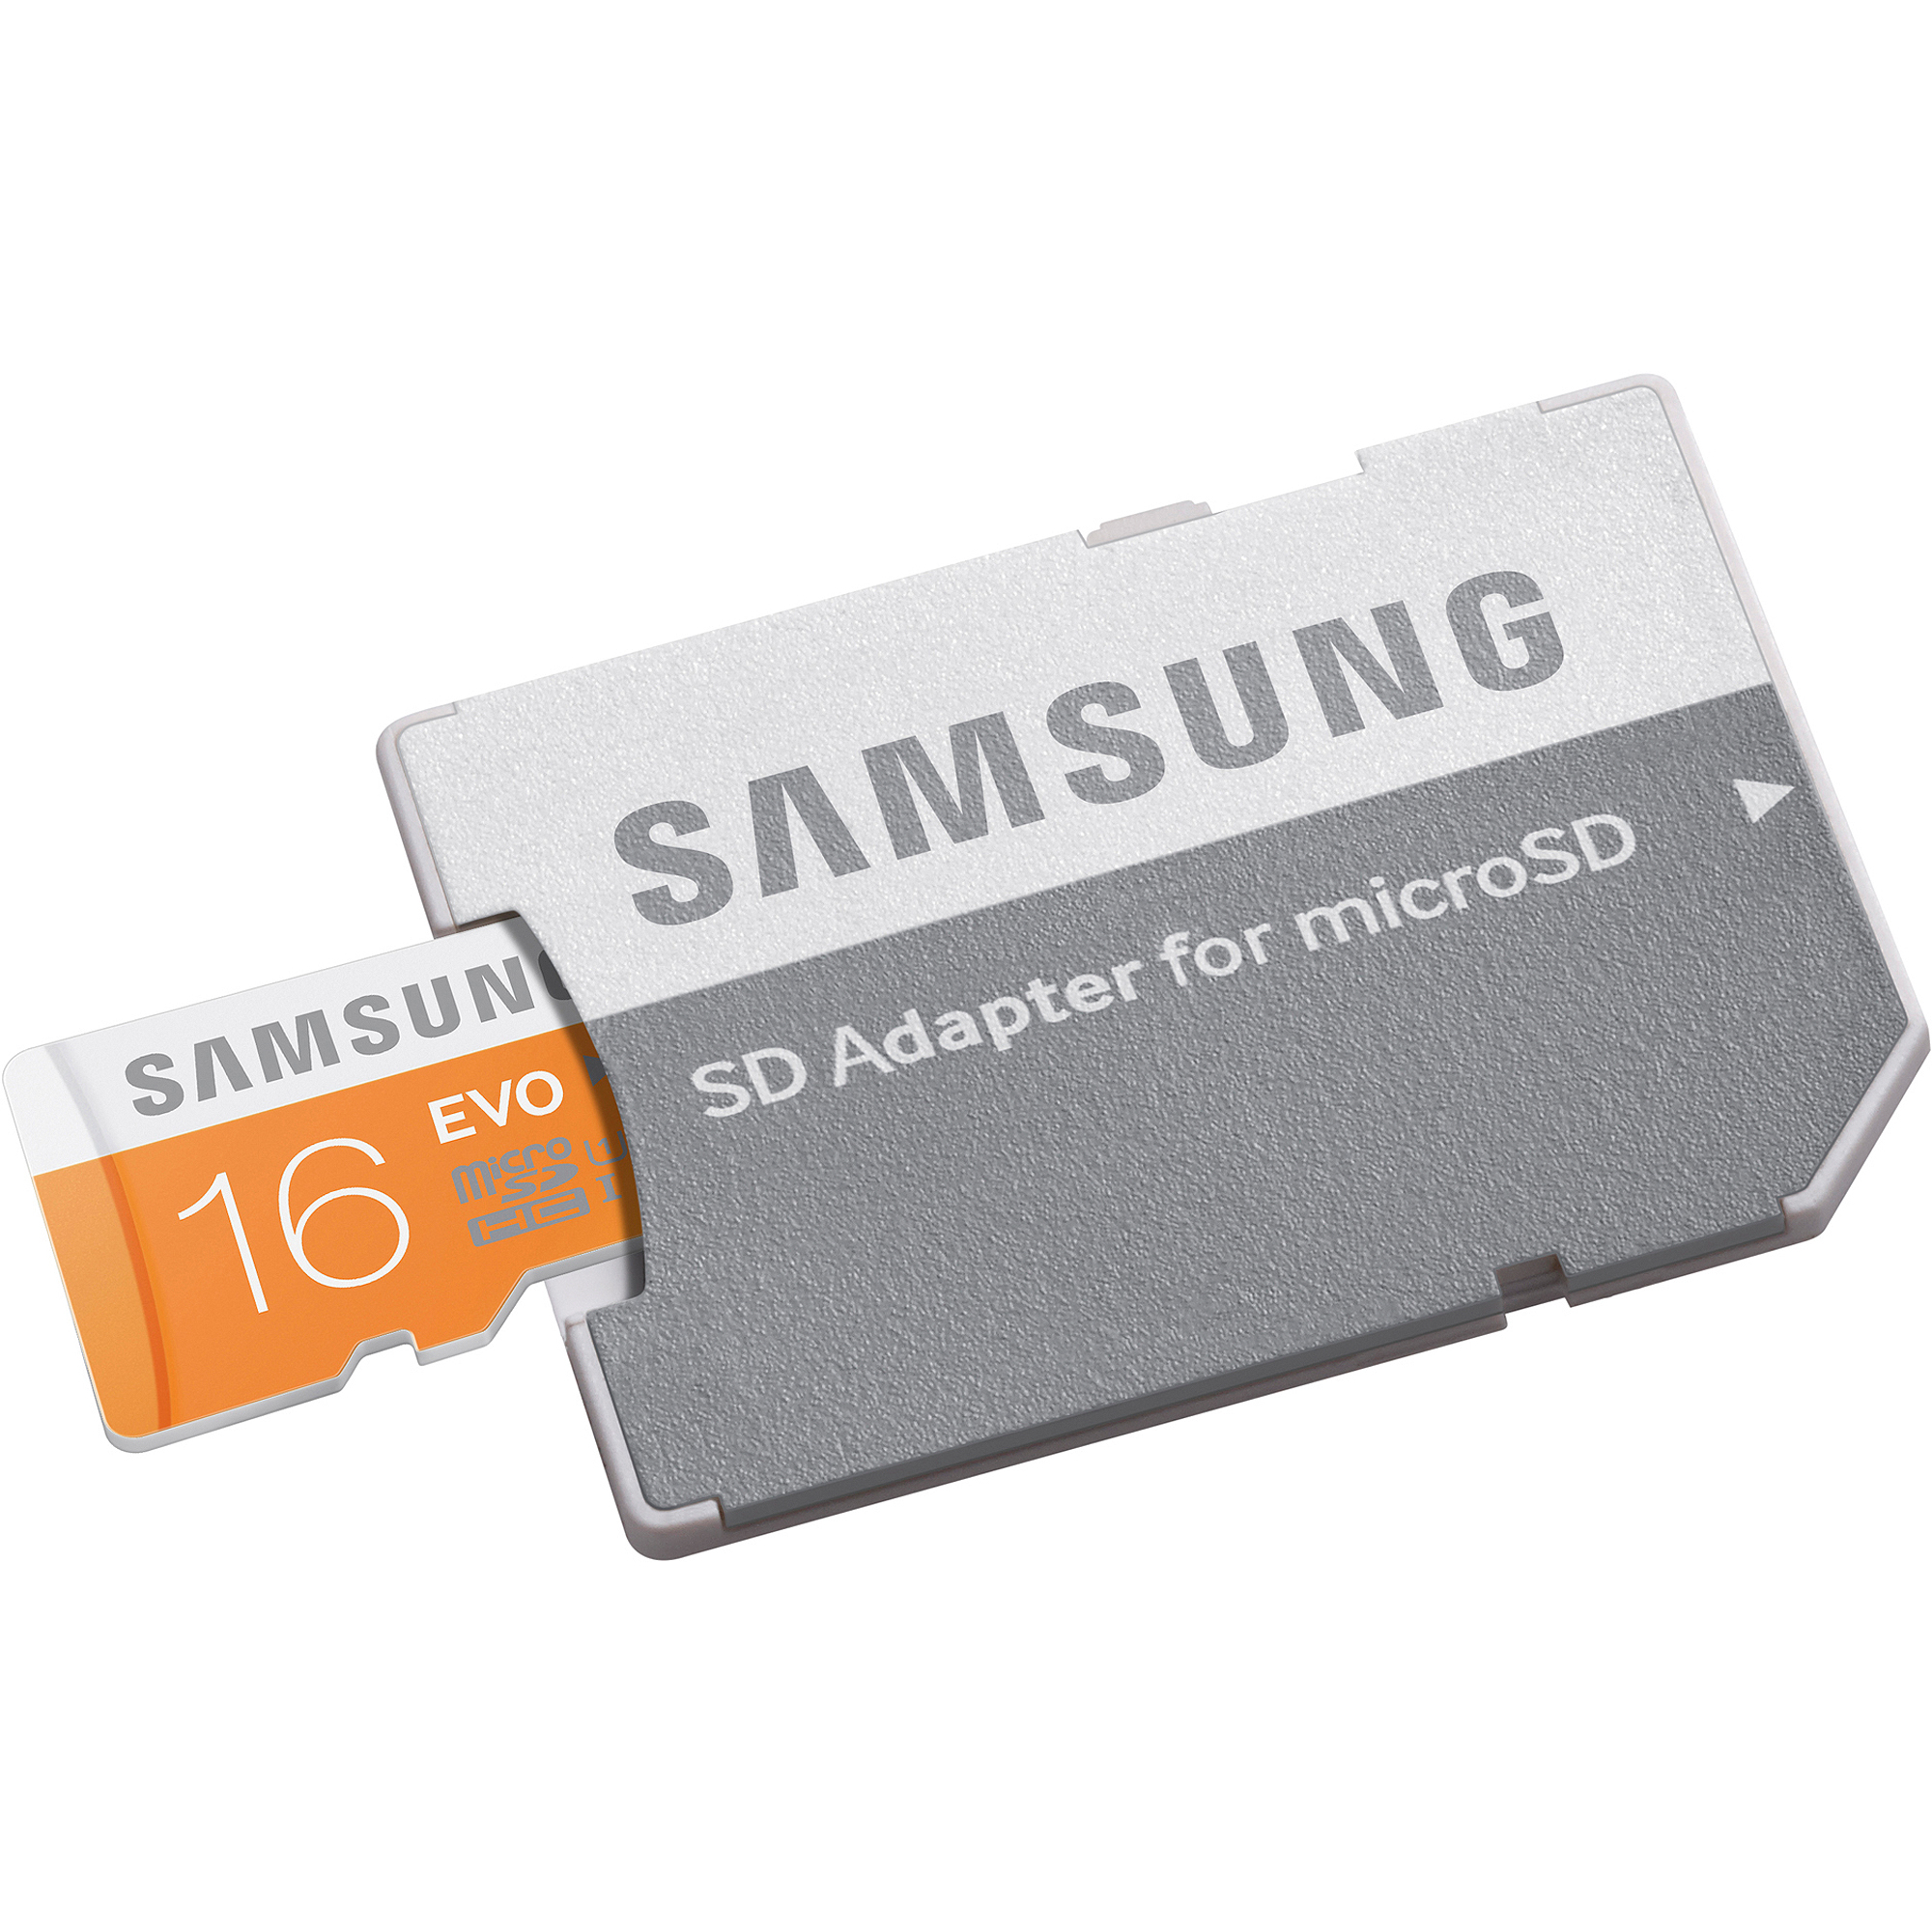 2017 05 512 xd picture card - Samsung 16gb Evo Class 10 Microsd Card With Adapter